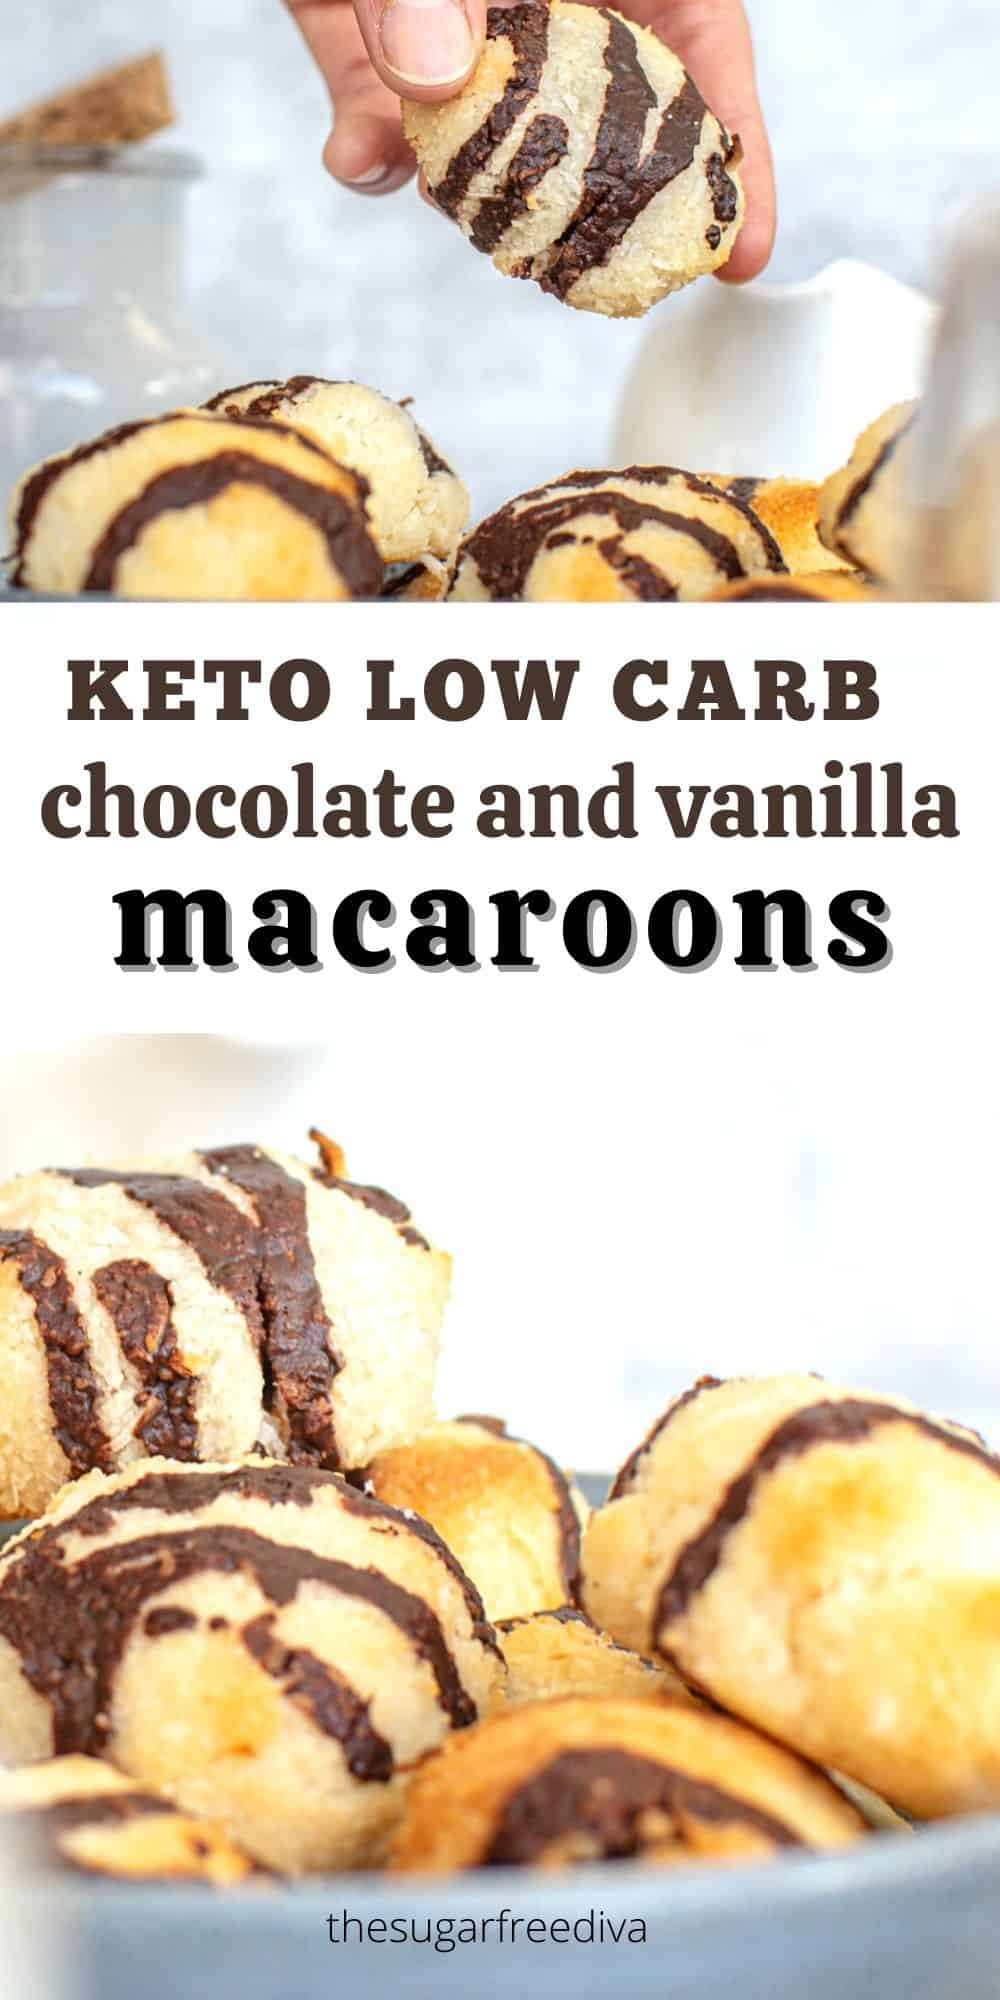 Keto Low Carb Chocolate and Vanilla Macaroons